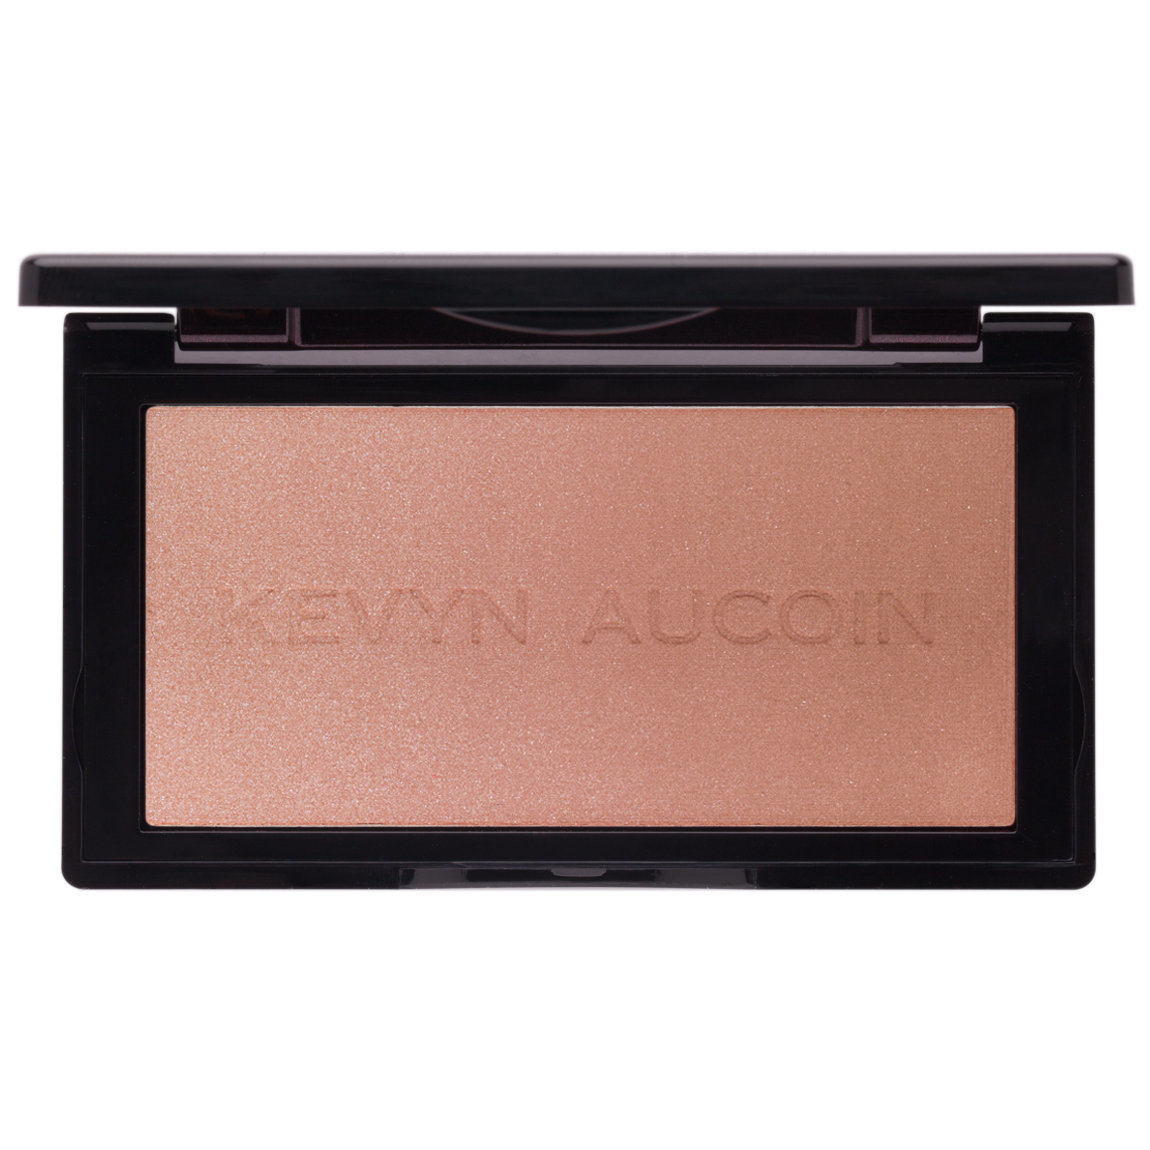 Kevyn Aucoin The Neo-Bronzer Sunrise Light product swatch.